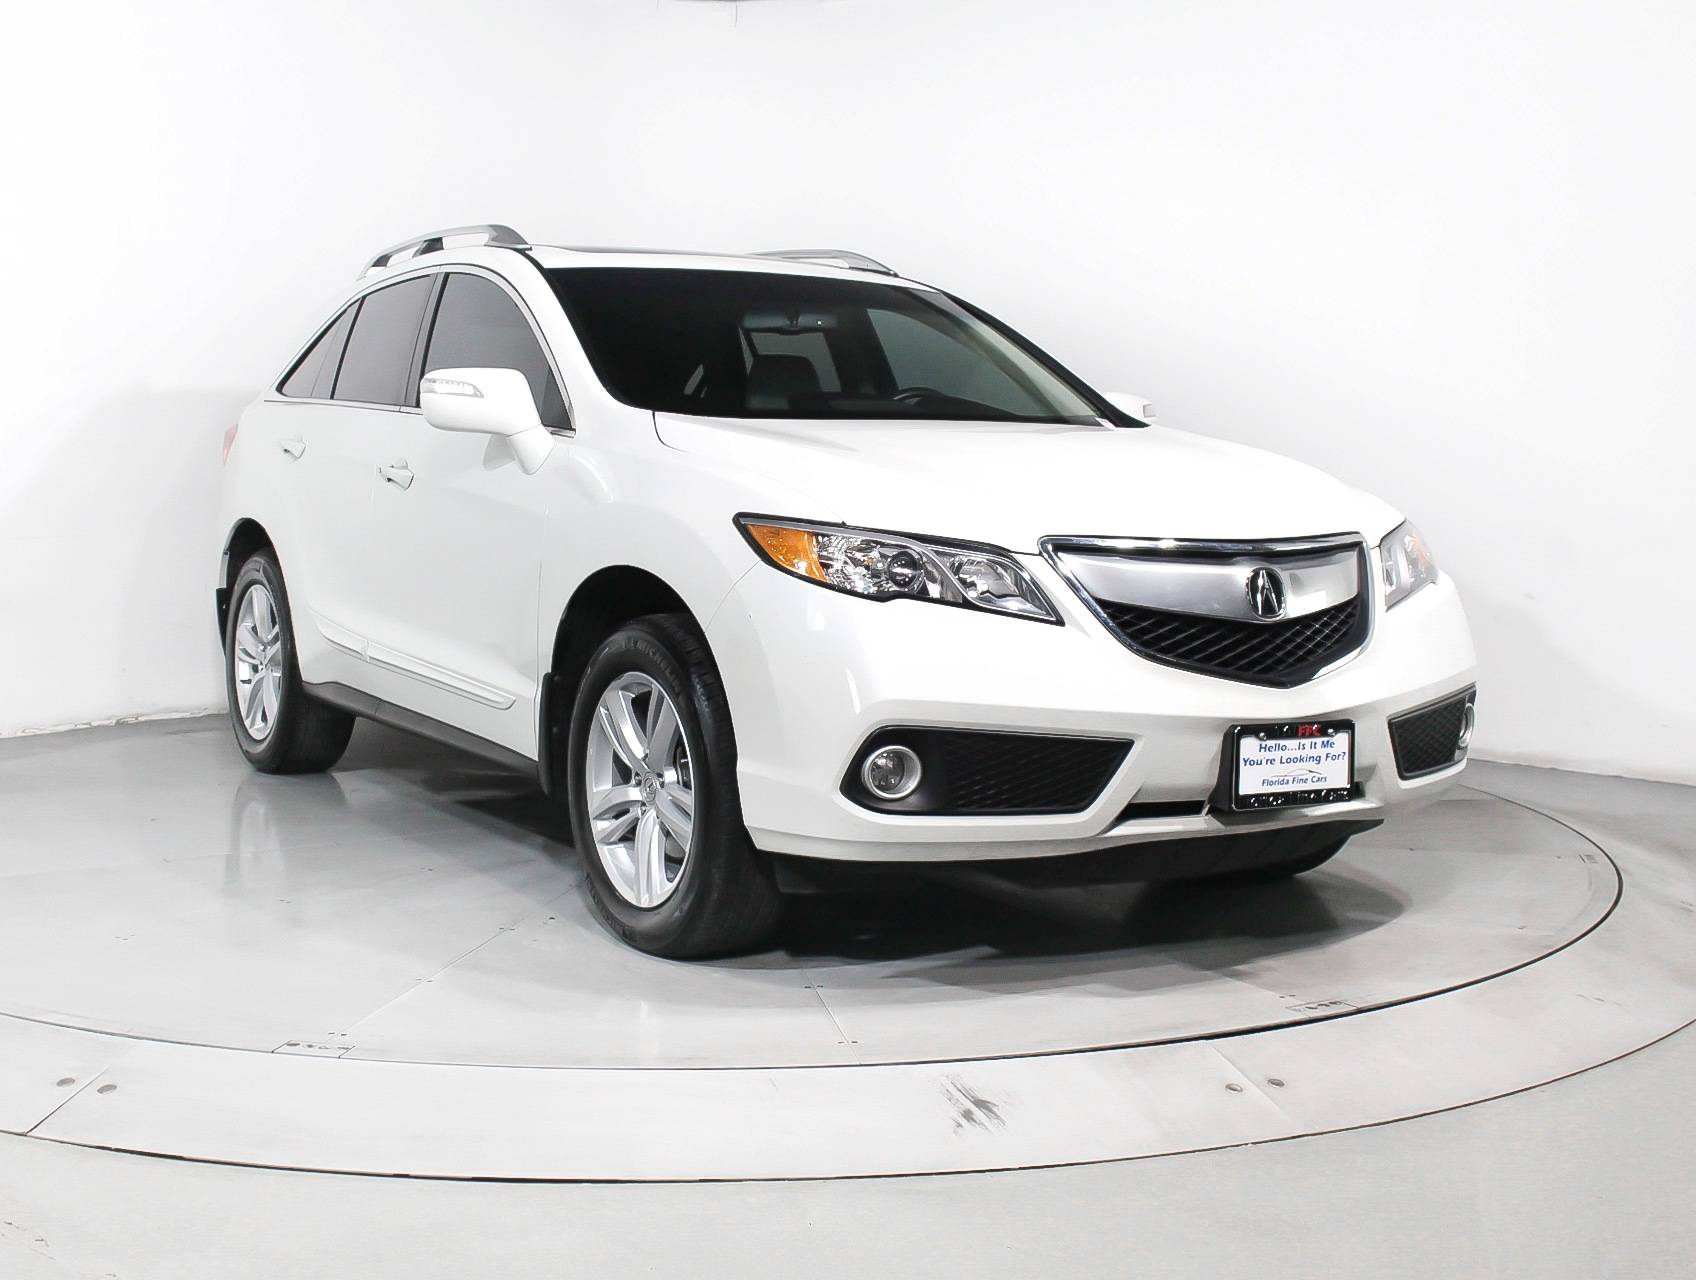 cc for near sale woodfield s rockford used il suv rdx muller acura